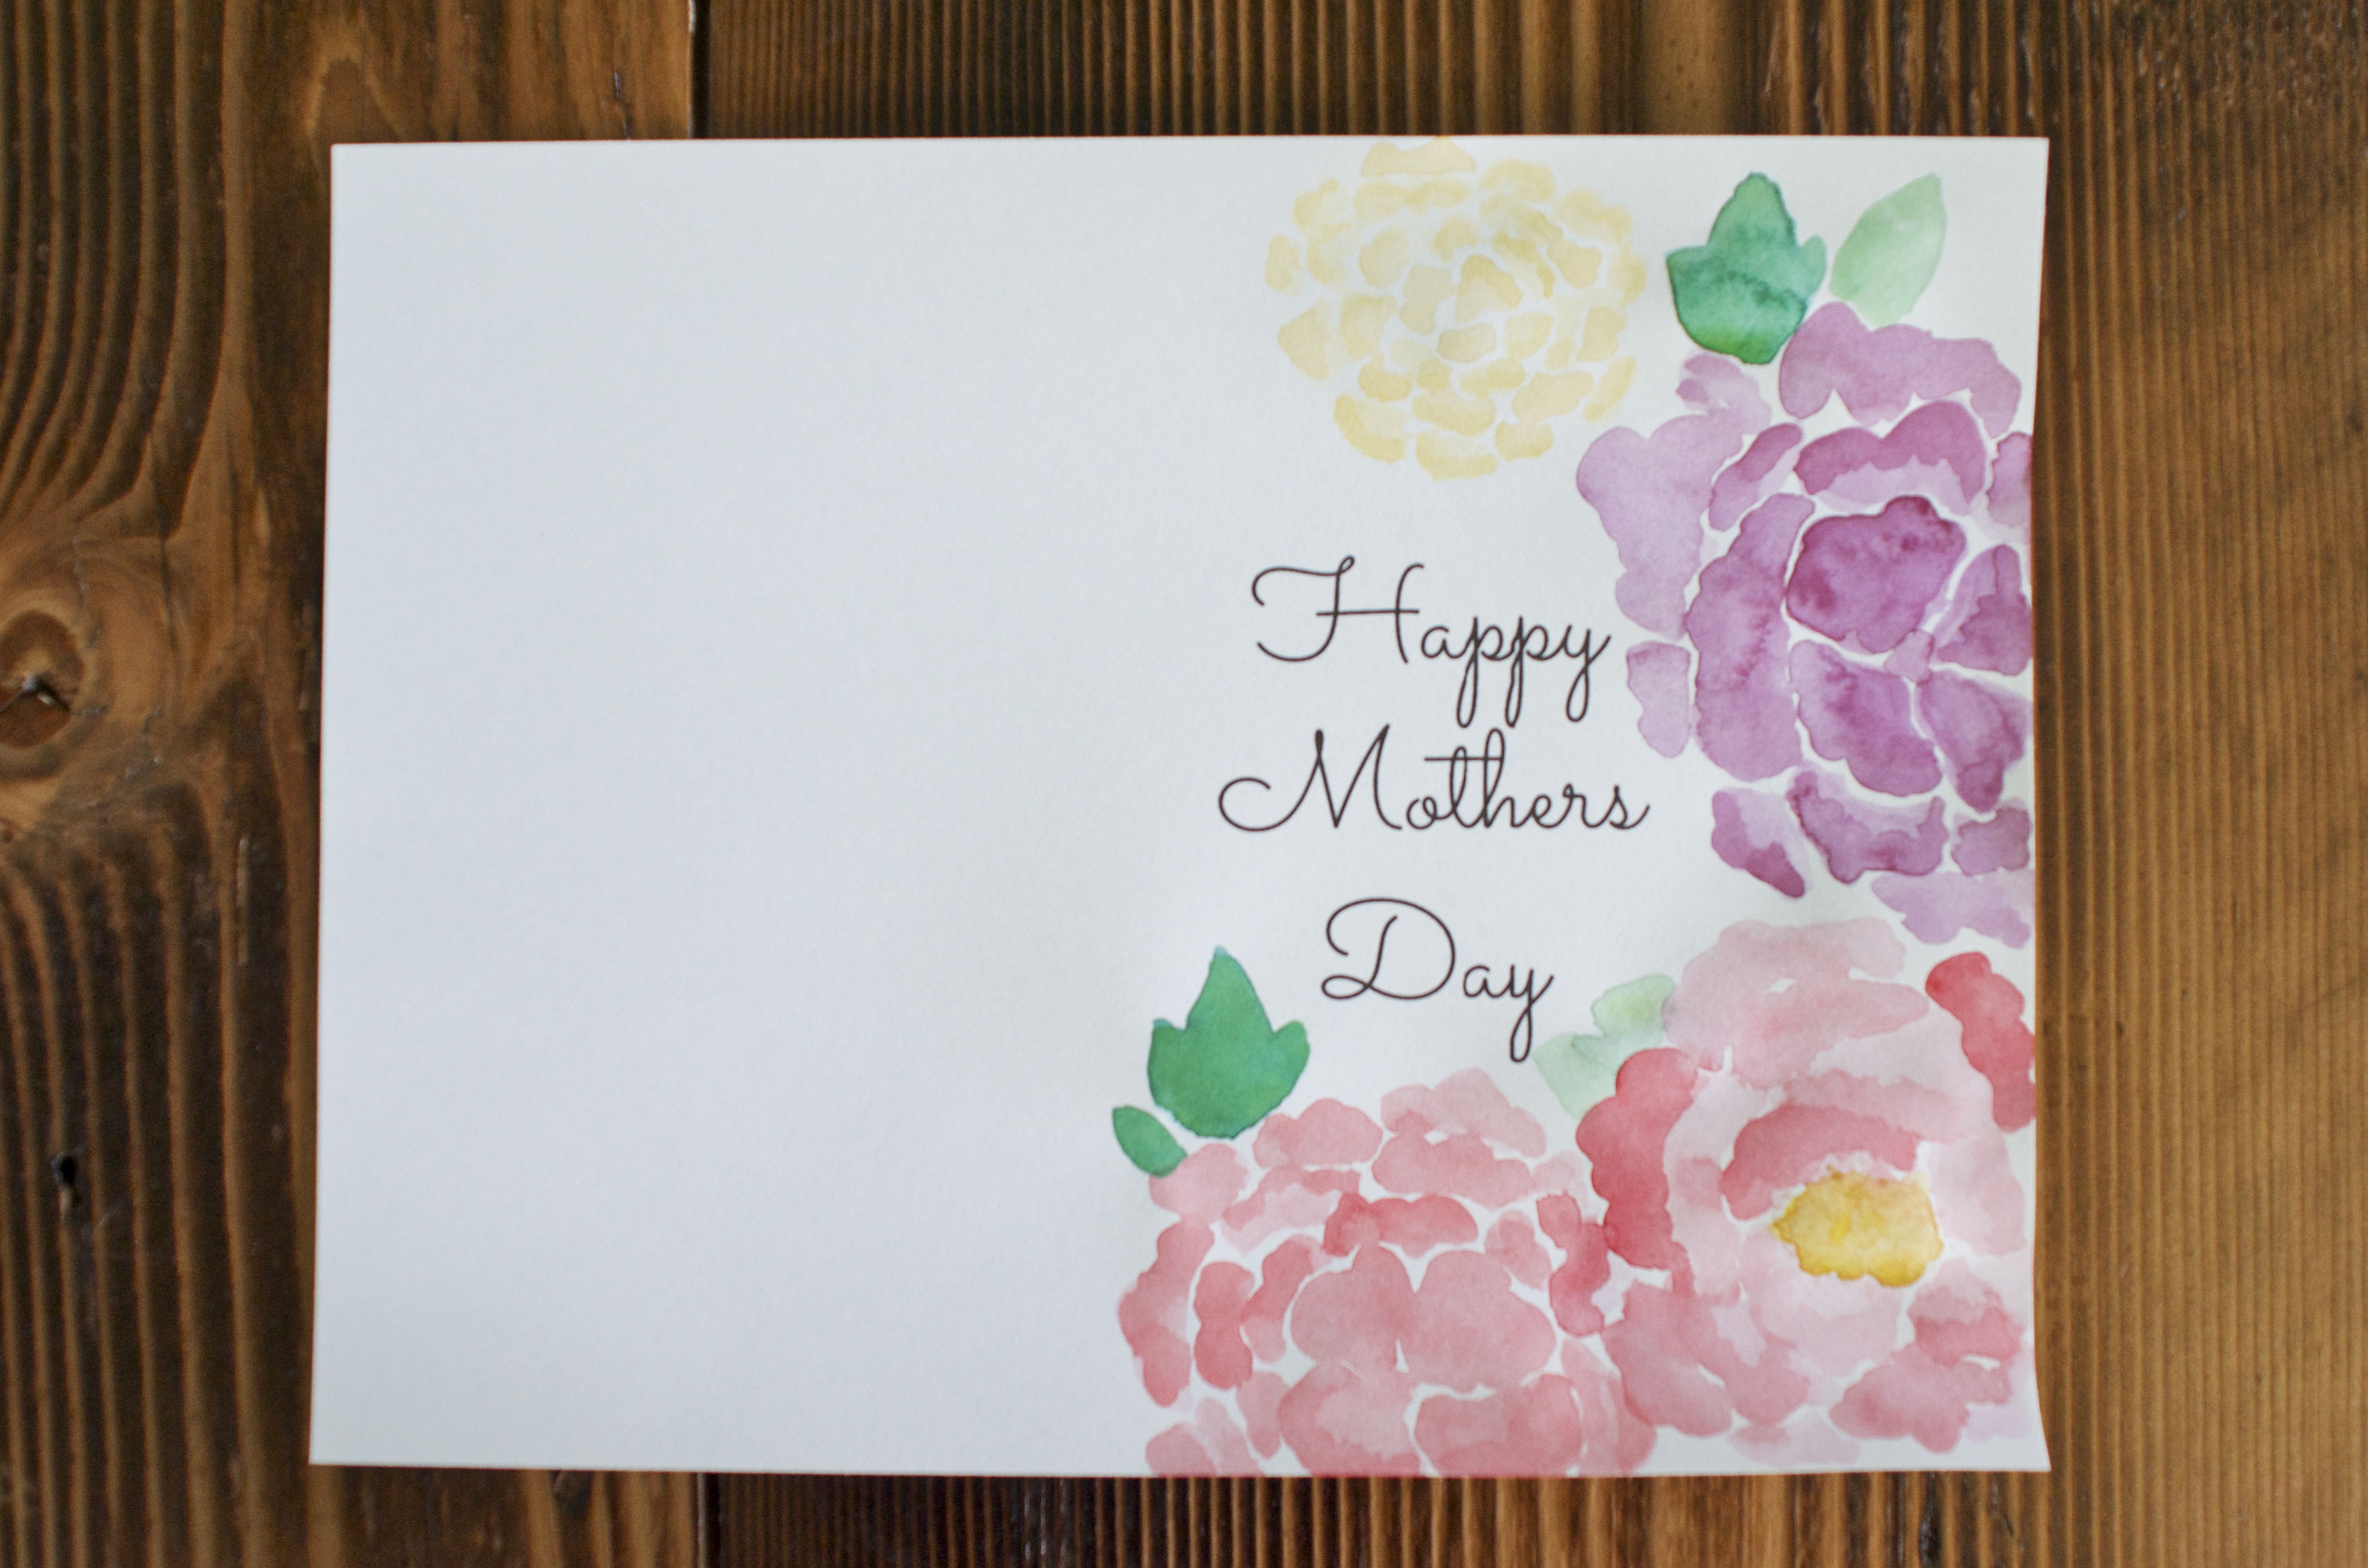 Best ideas about DIY Mothers Day . Save or Pin Mothers Day DIY Now.